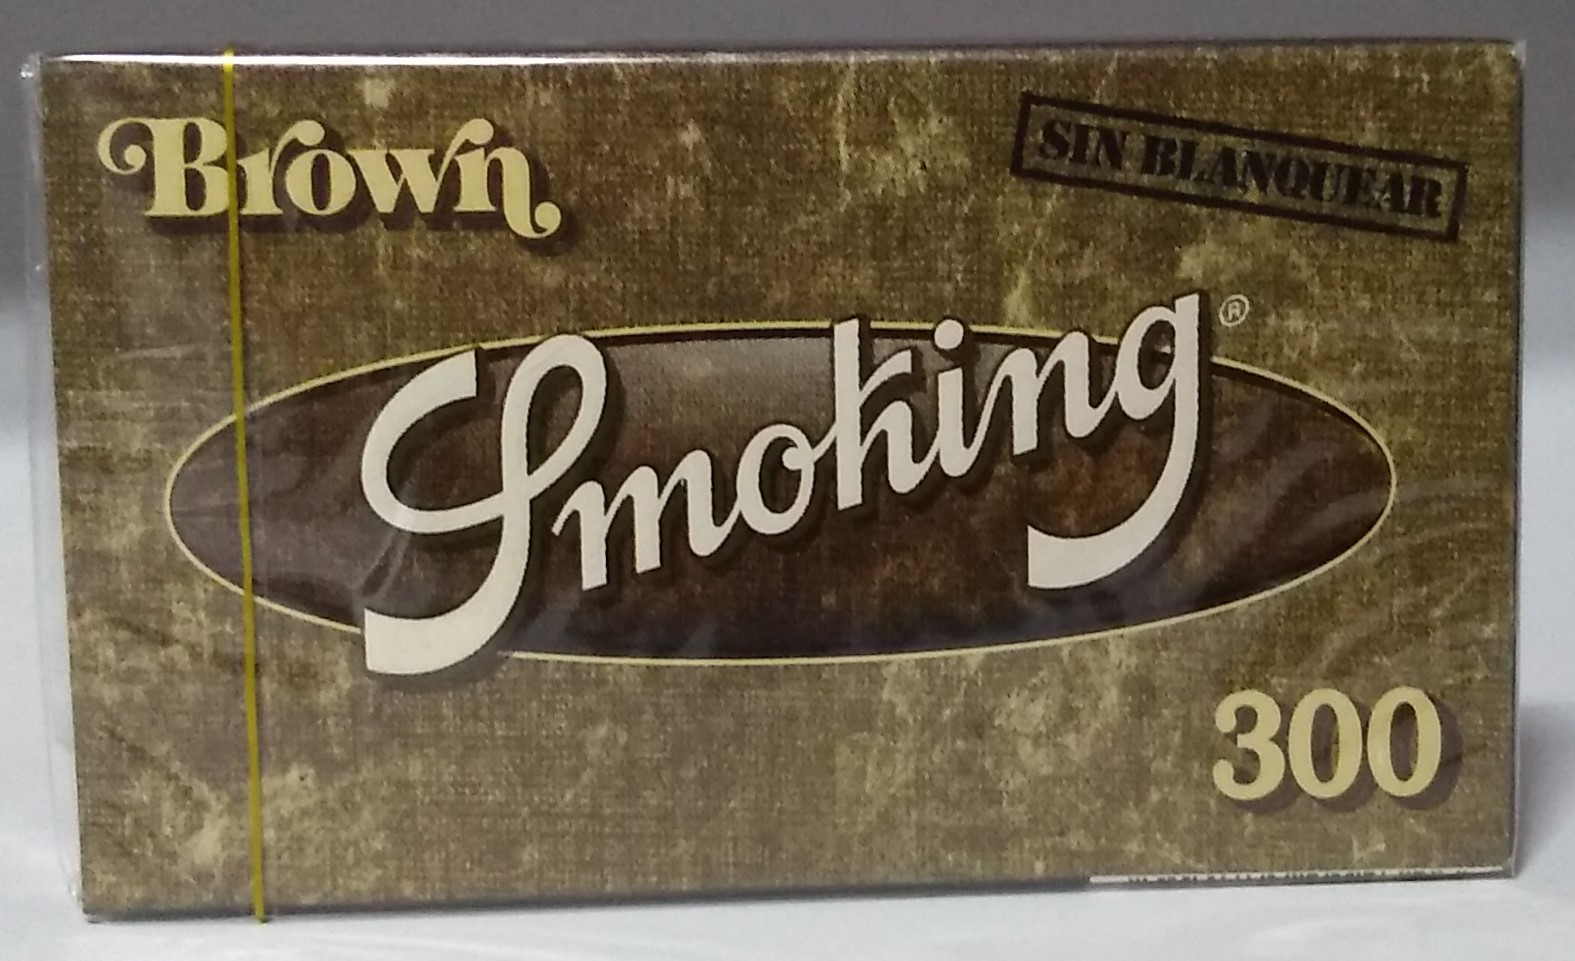 Papel Smoking Brown Bloc 300 1.1/4